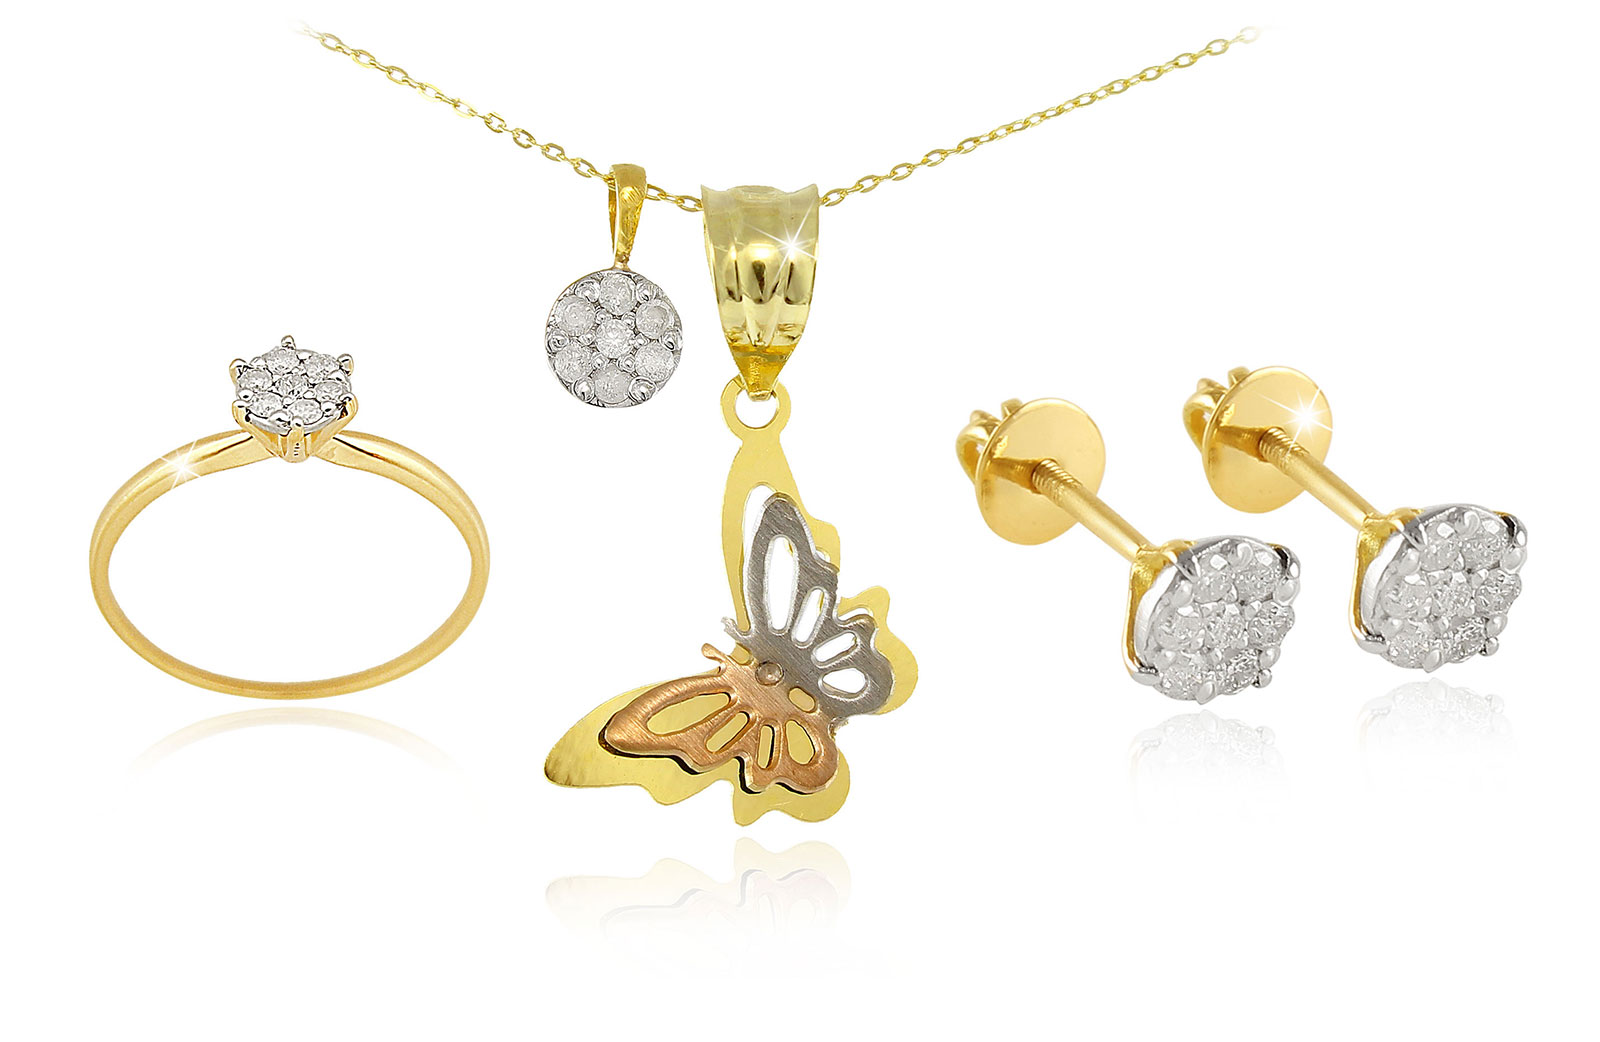 Vera Perla 18k Solid Gold Diamonds Solitaire Earrings, Ring and Necklace Set